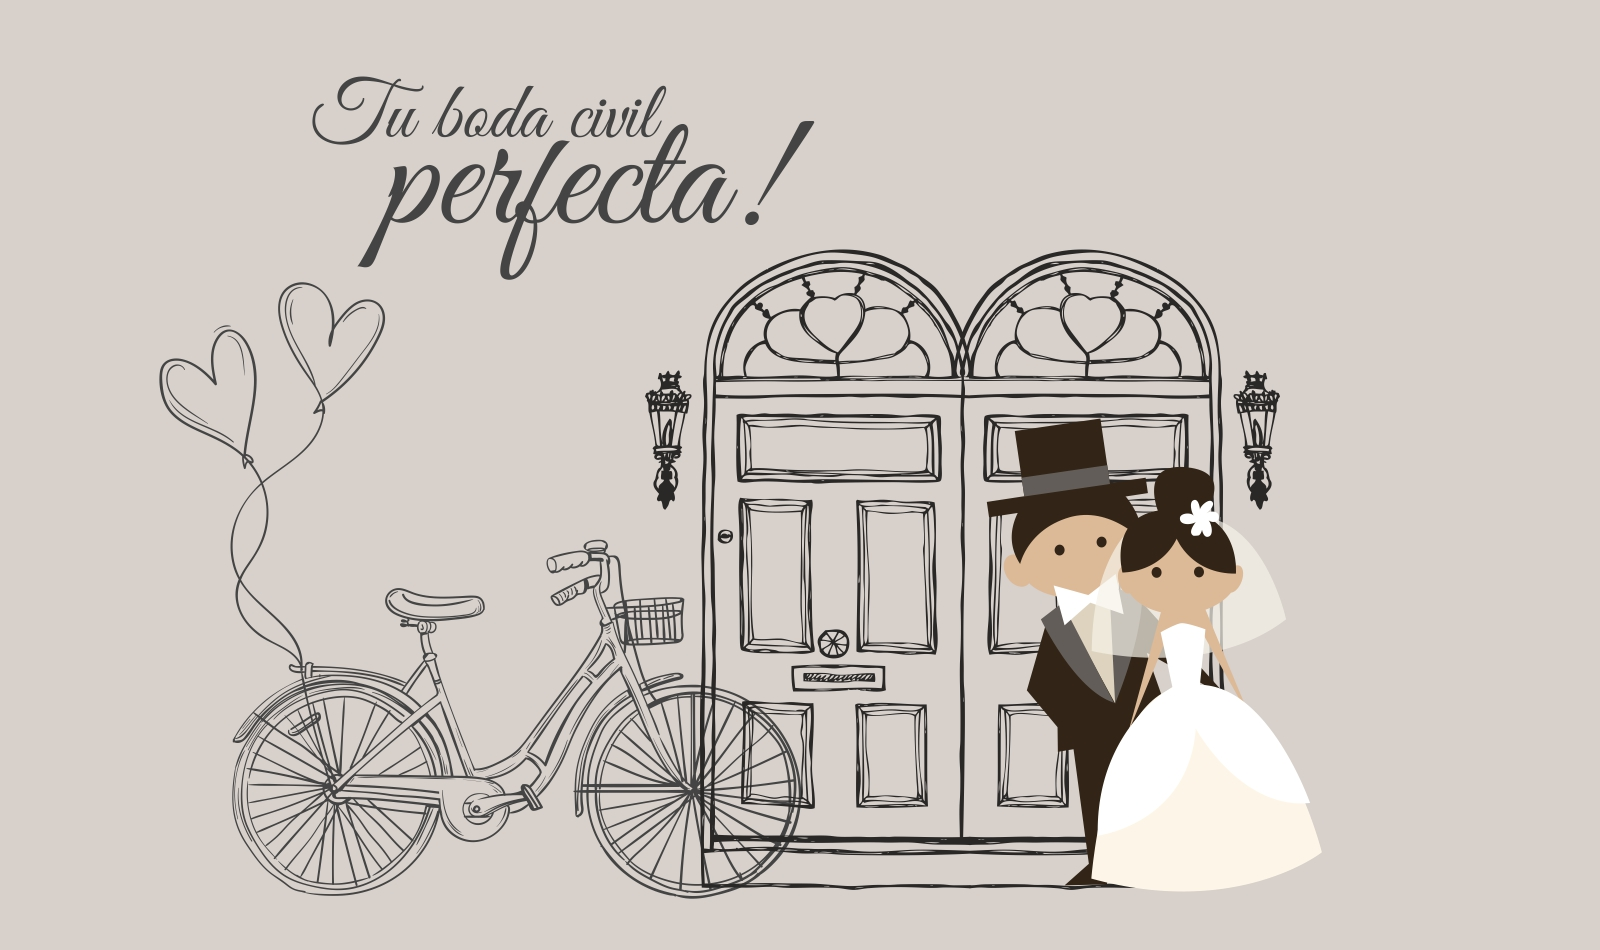 Organiza tu boda civil perfecta